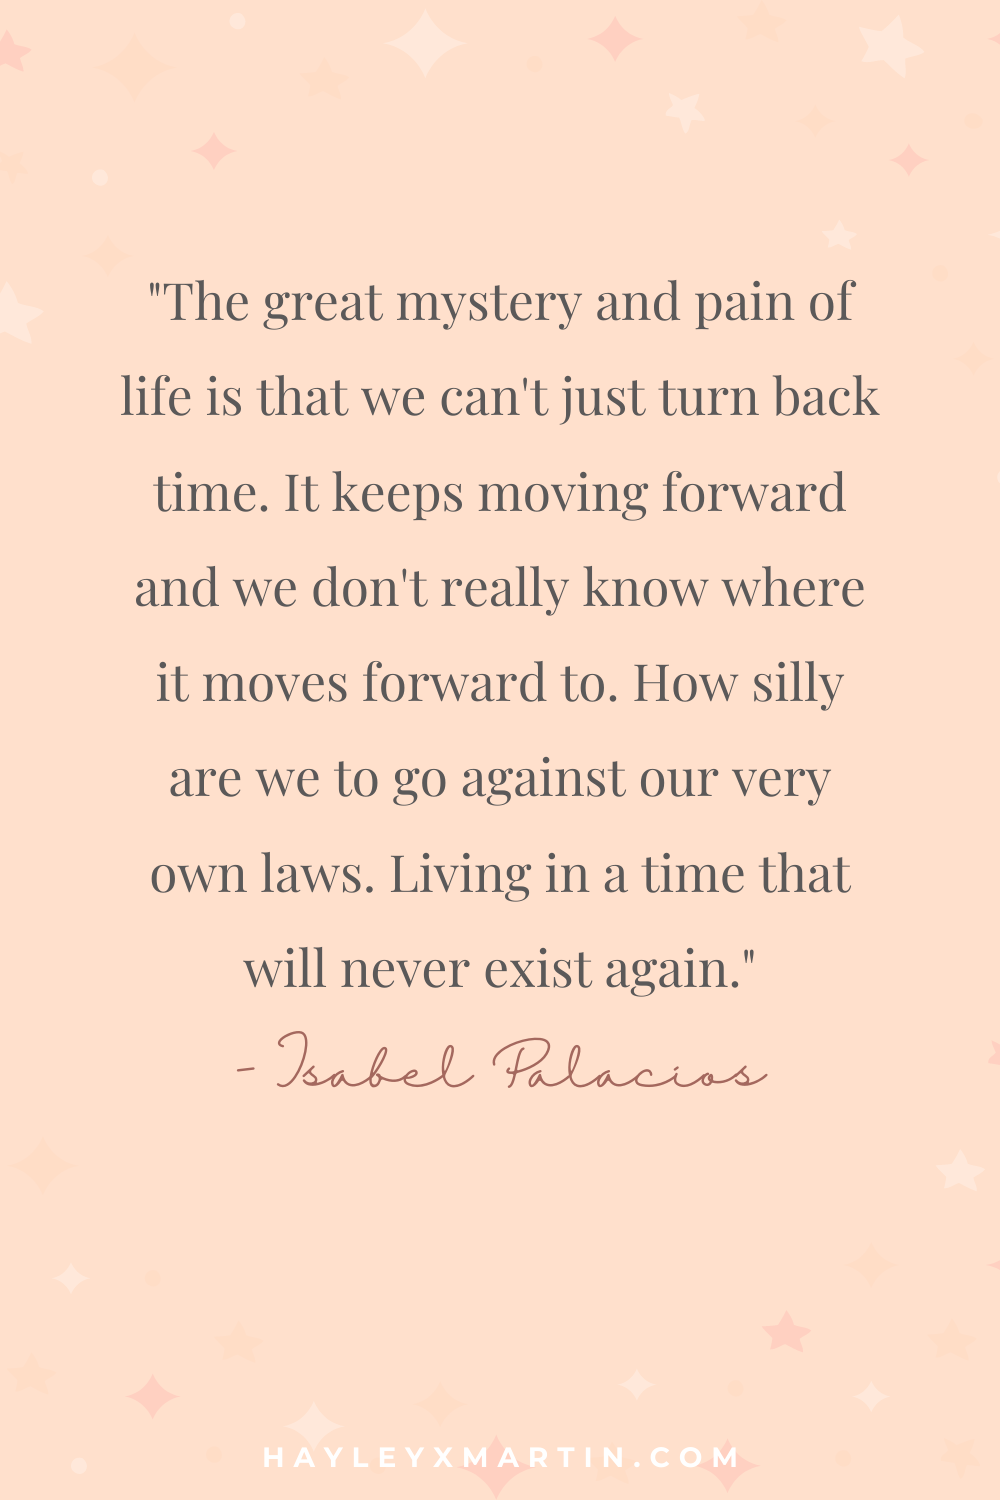 living in a time that will never exist again - isabel palacios - hayleyxmartin.com